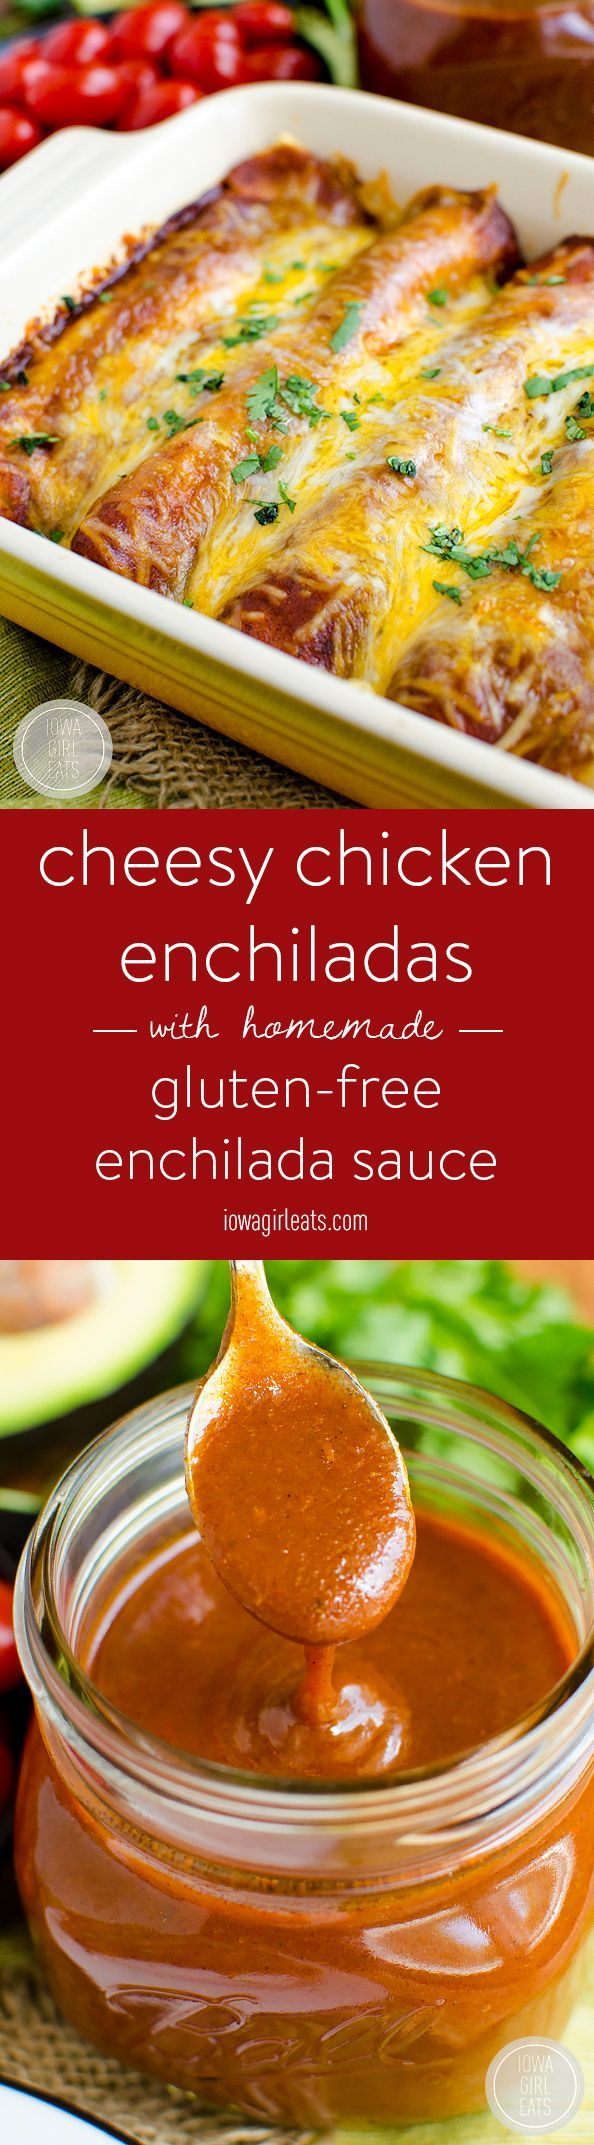 Cheesy Chicken Enchiladas With Homemade Gluten Free Enchilada Sauce